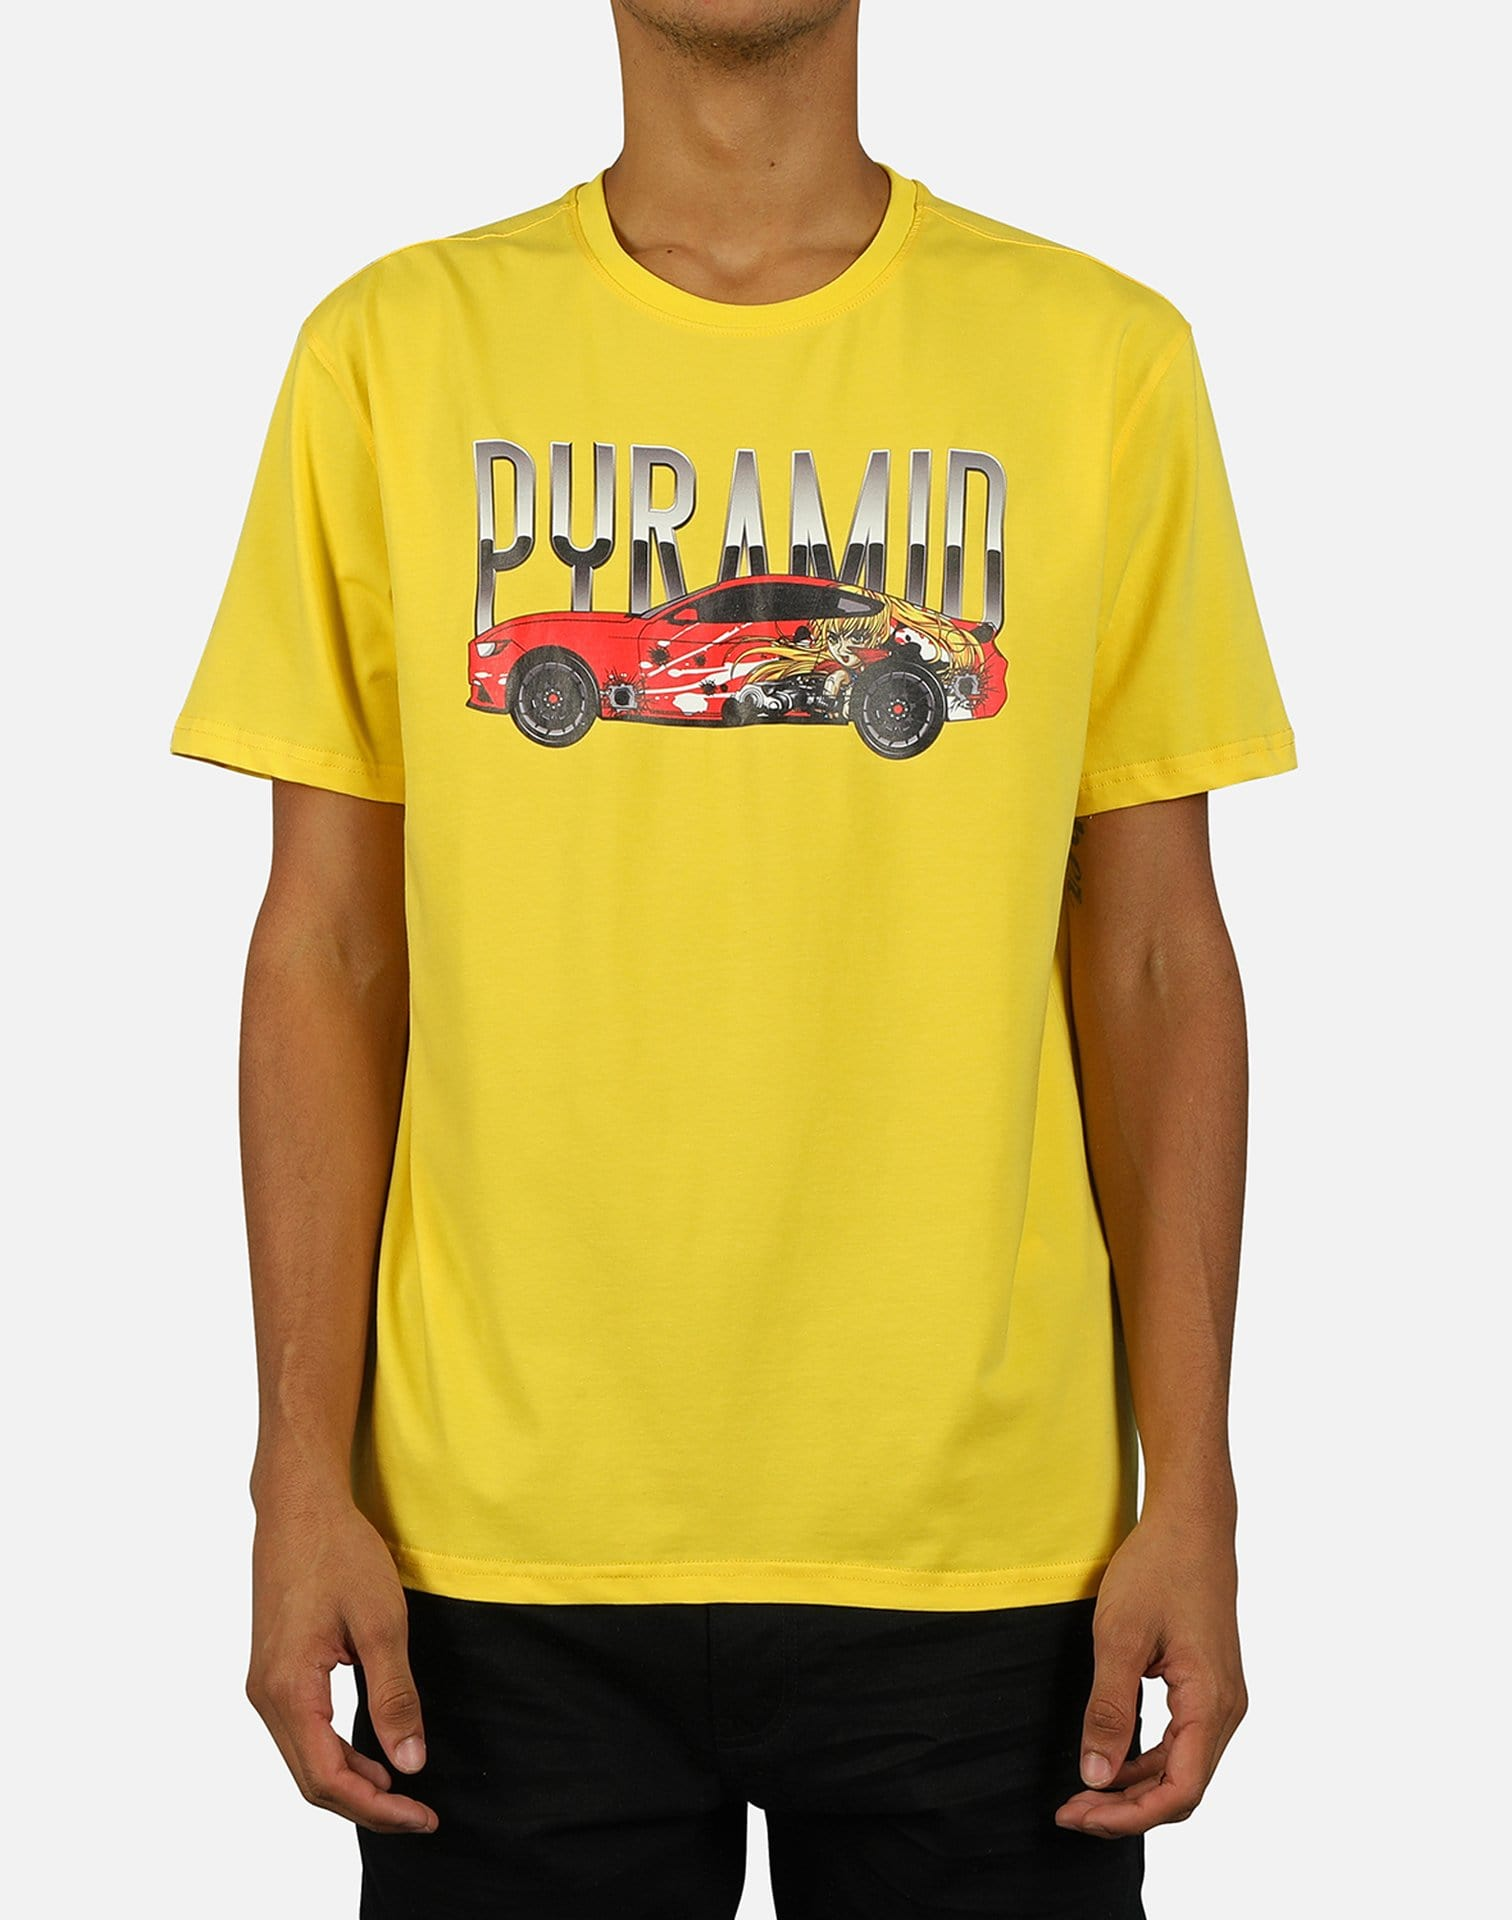 Black Pyramid men's Anime Car Tee